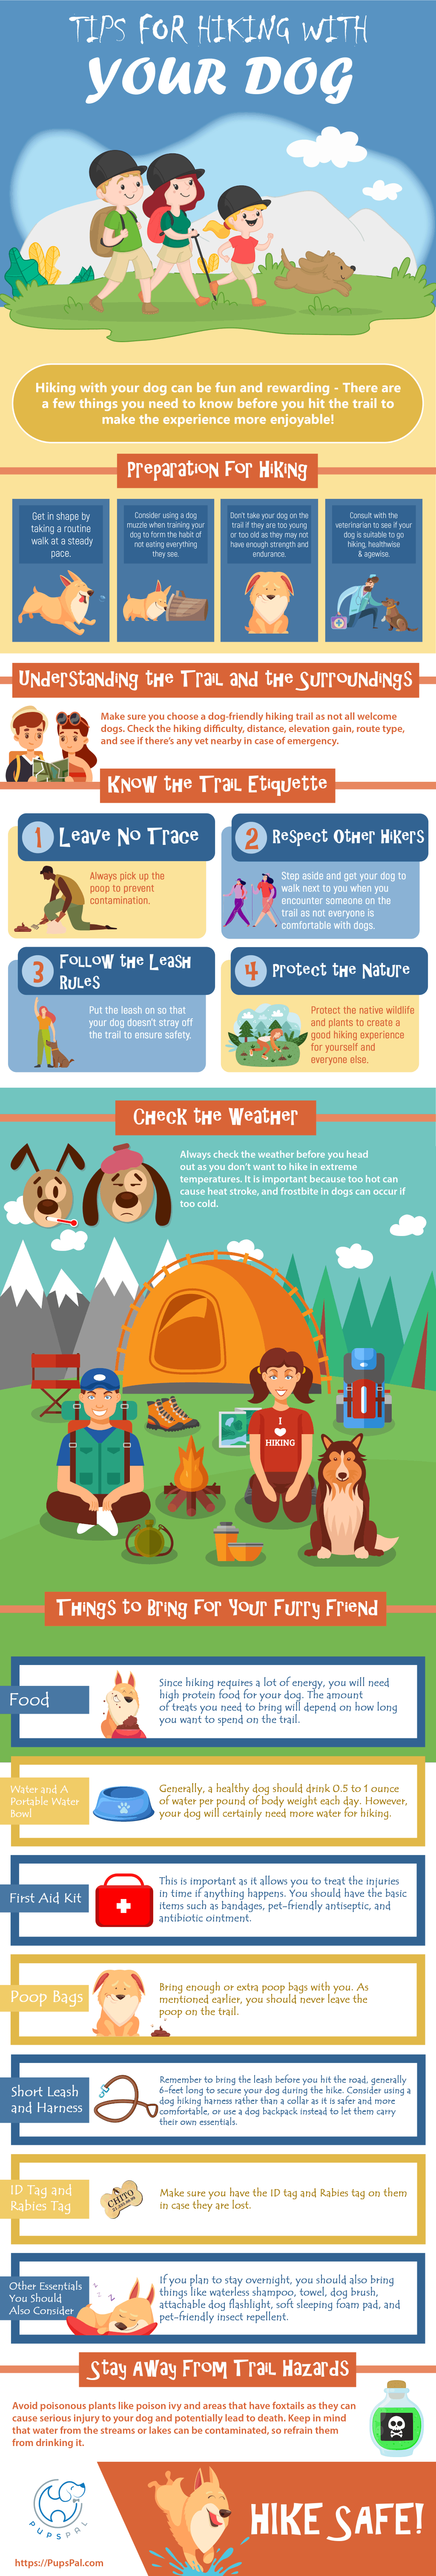 Tips for Hiking with Your Dog Infographic